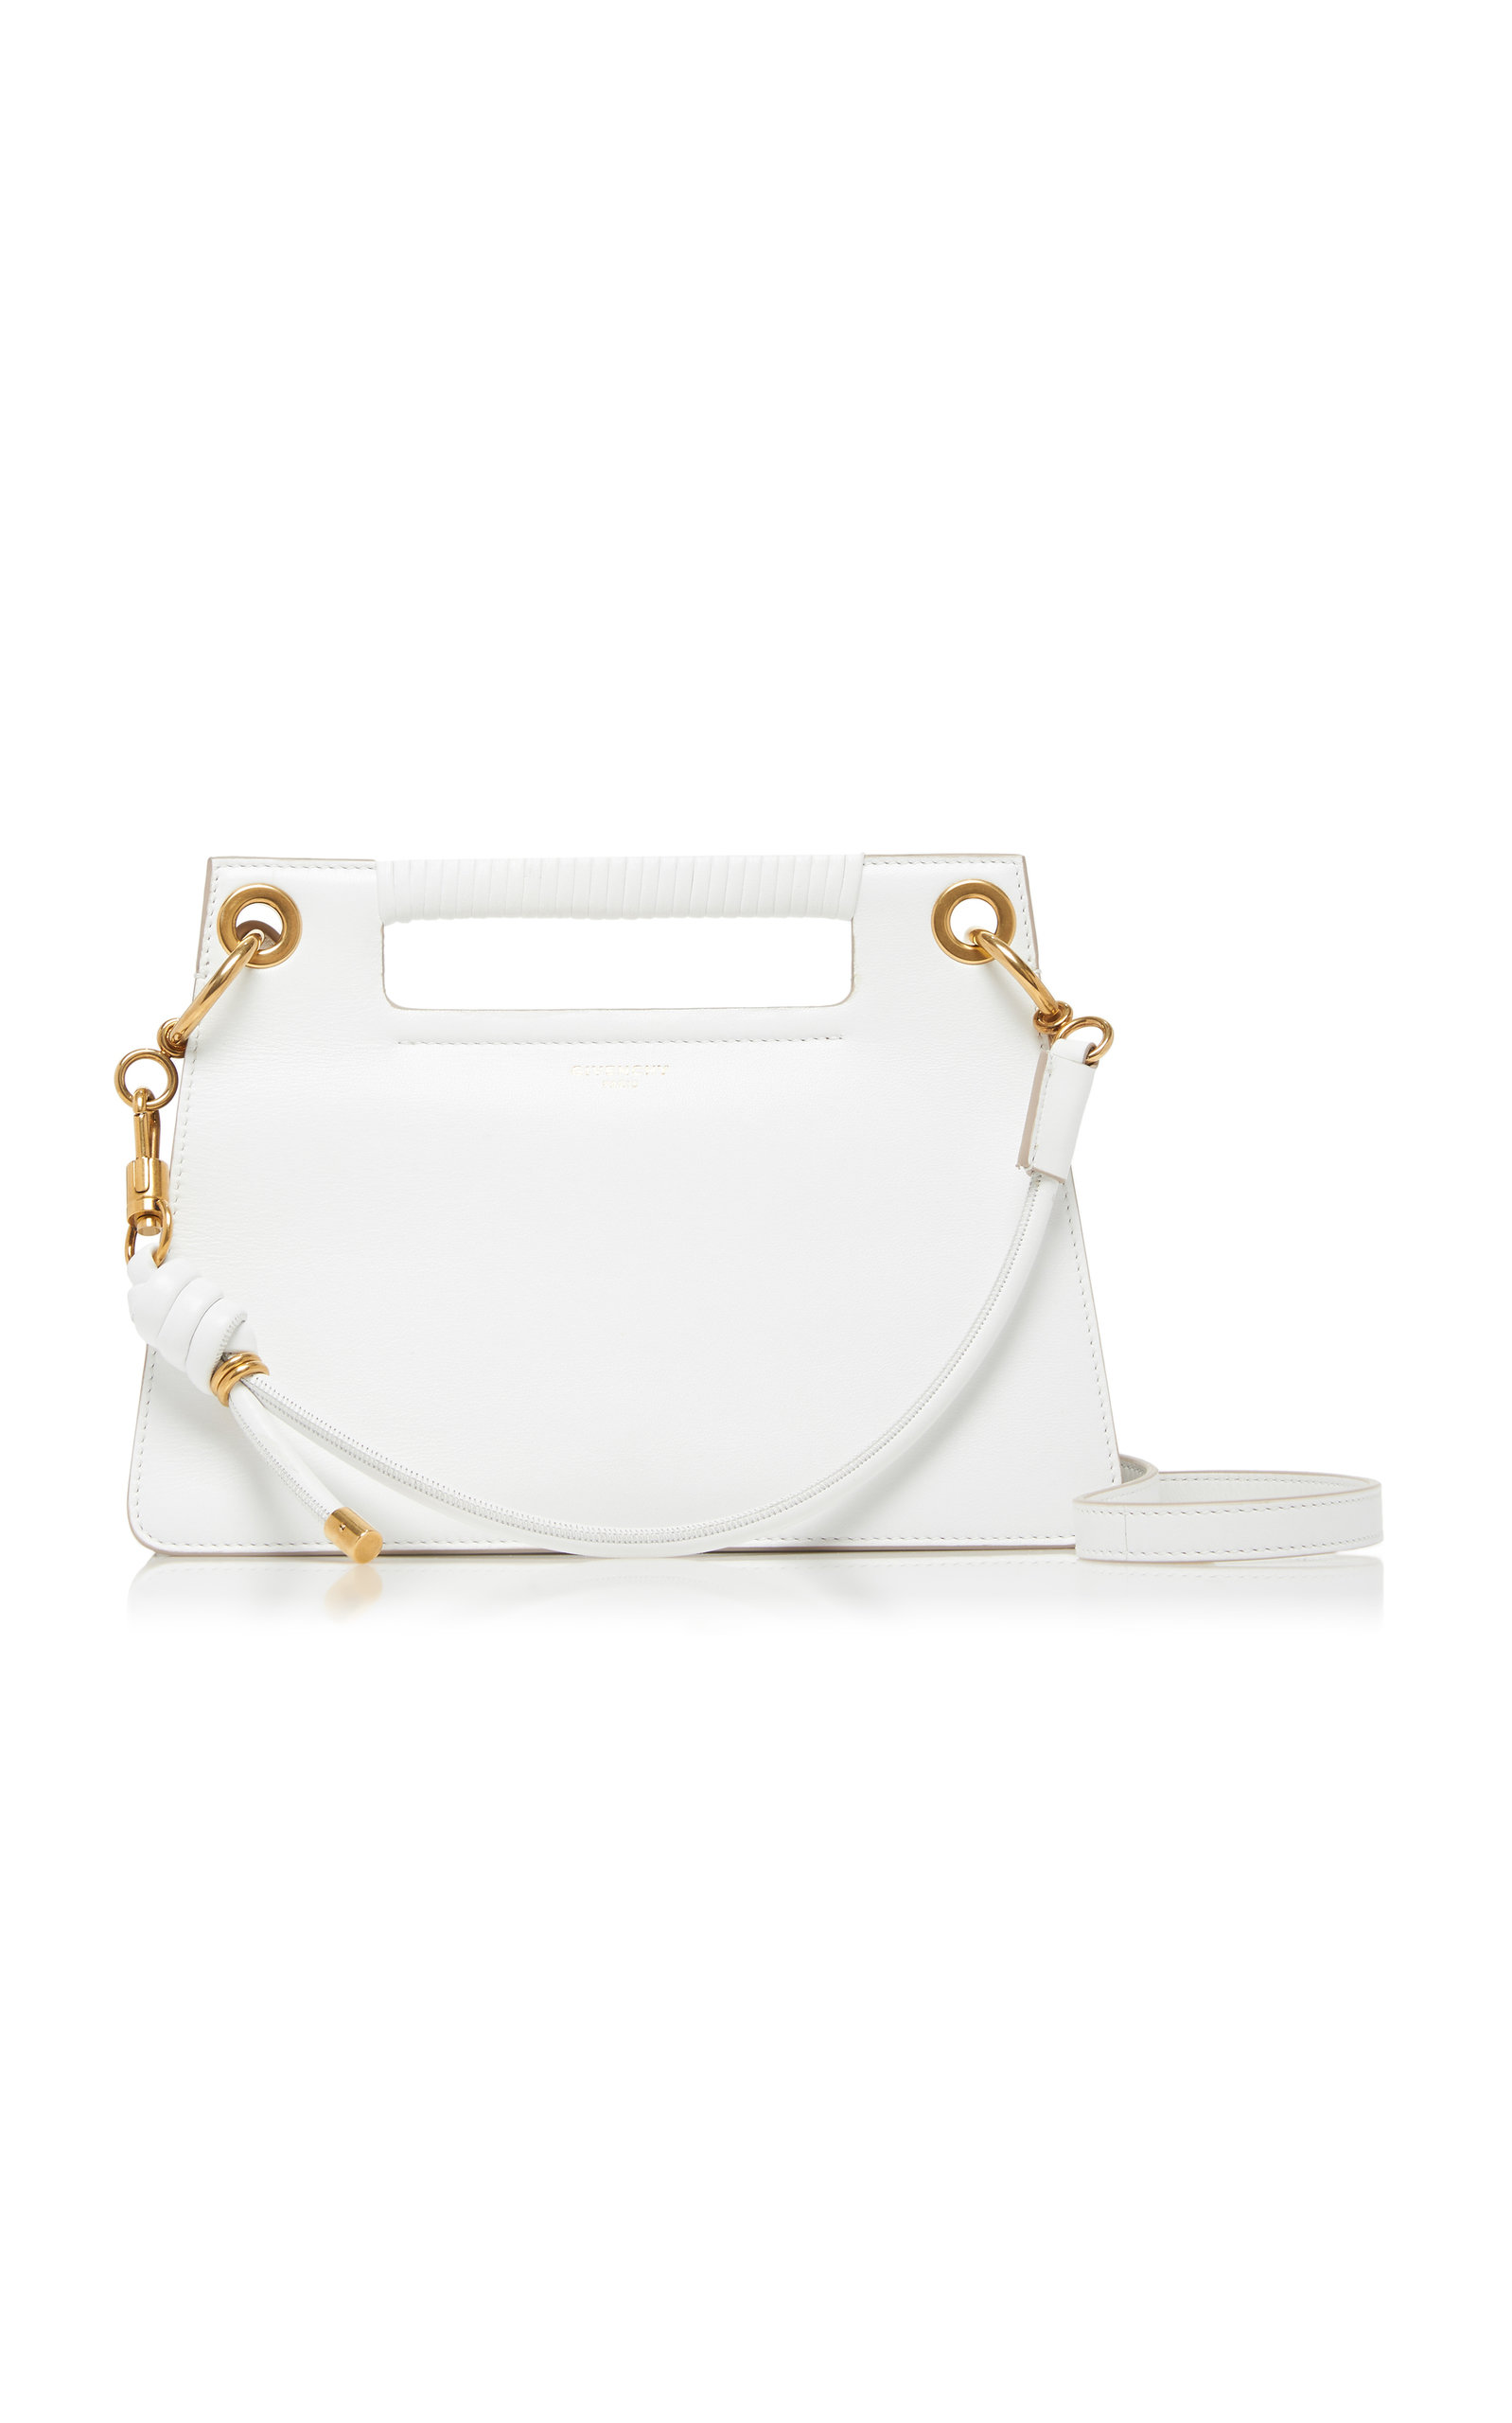 GIVENCHY | Givenchy Whip Small Knotted Leather Shoulder Bag | Goxip